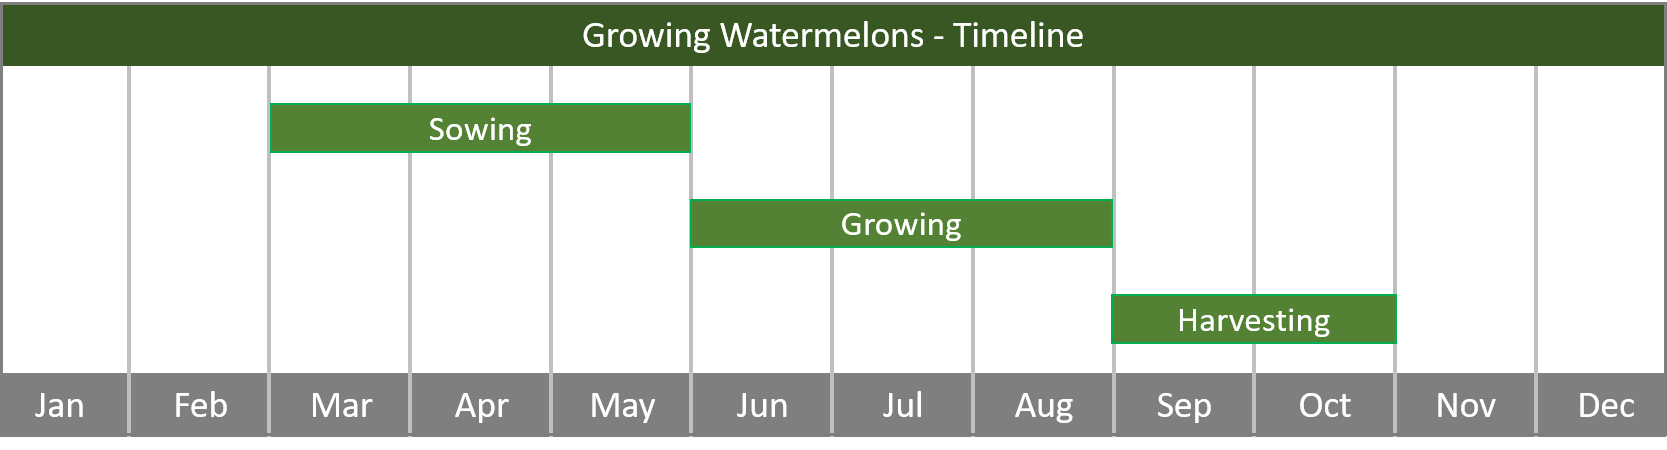 how to grow watermelons from seed to harvest at home timeline